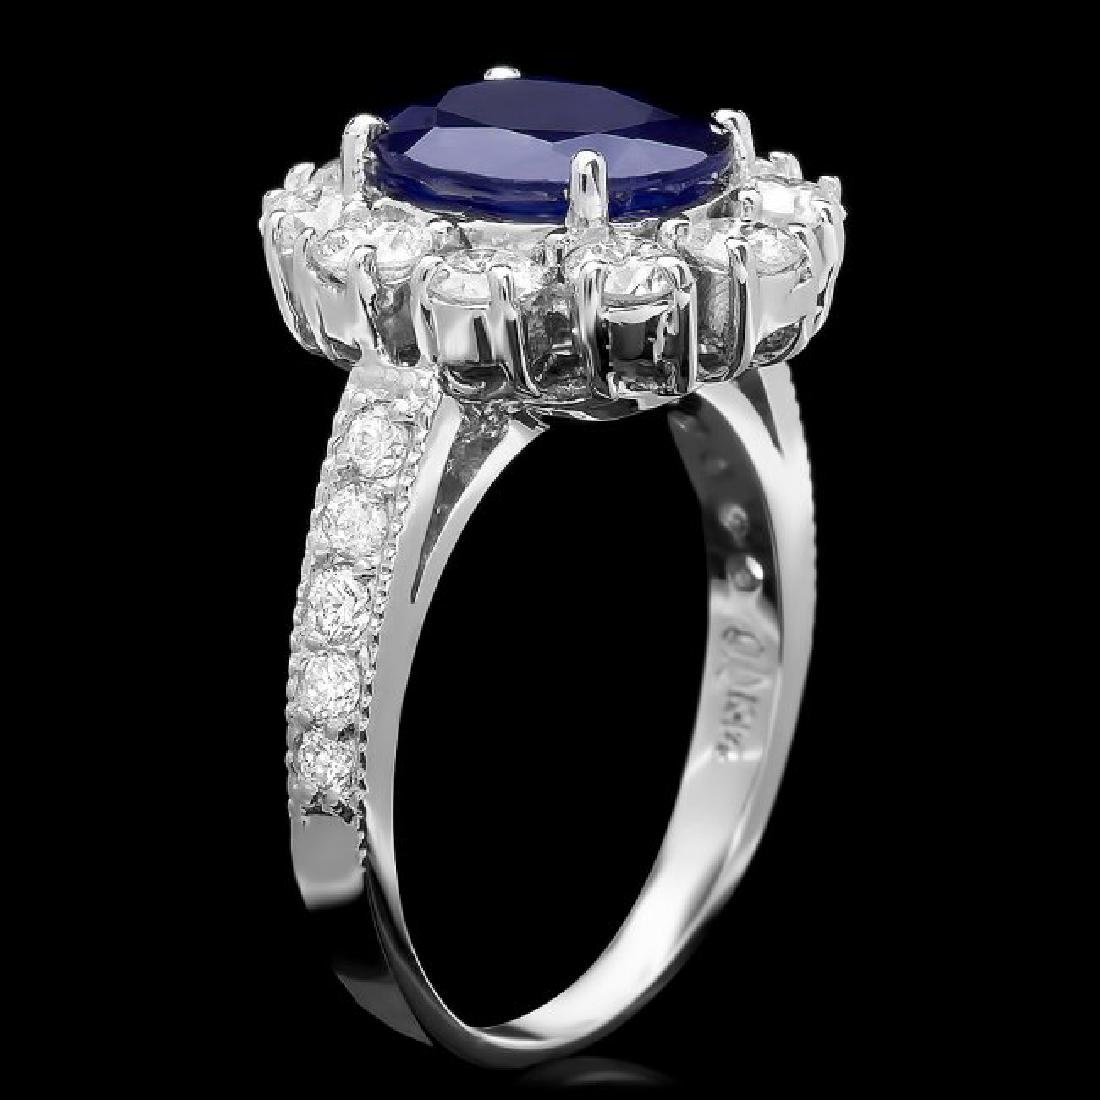 14k White Gold 2.60ct Sapphire 1.5ct Diamond Ring - 2